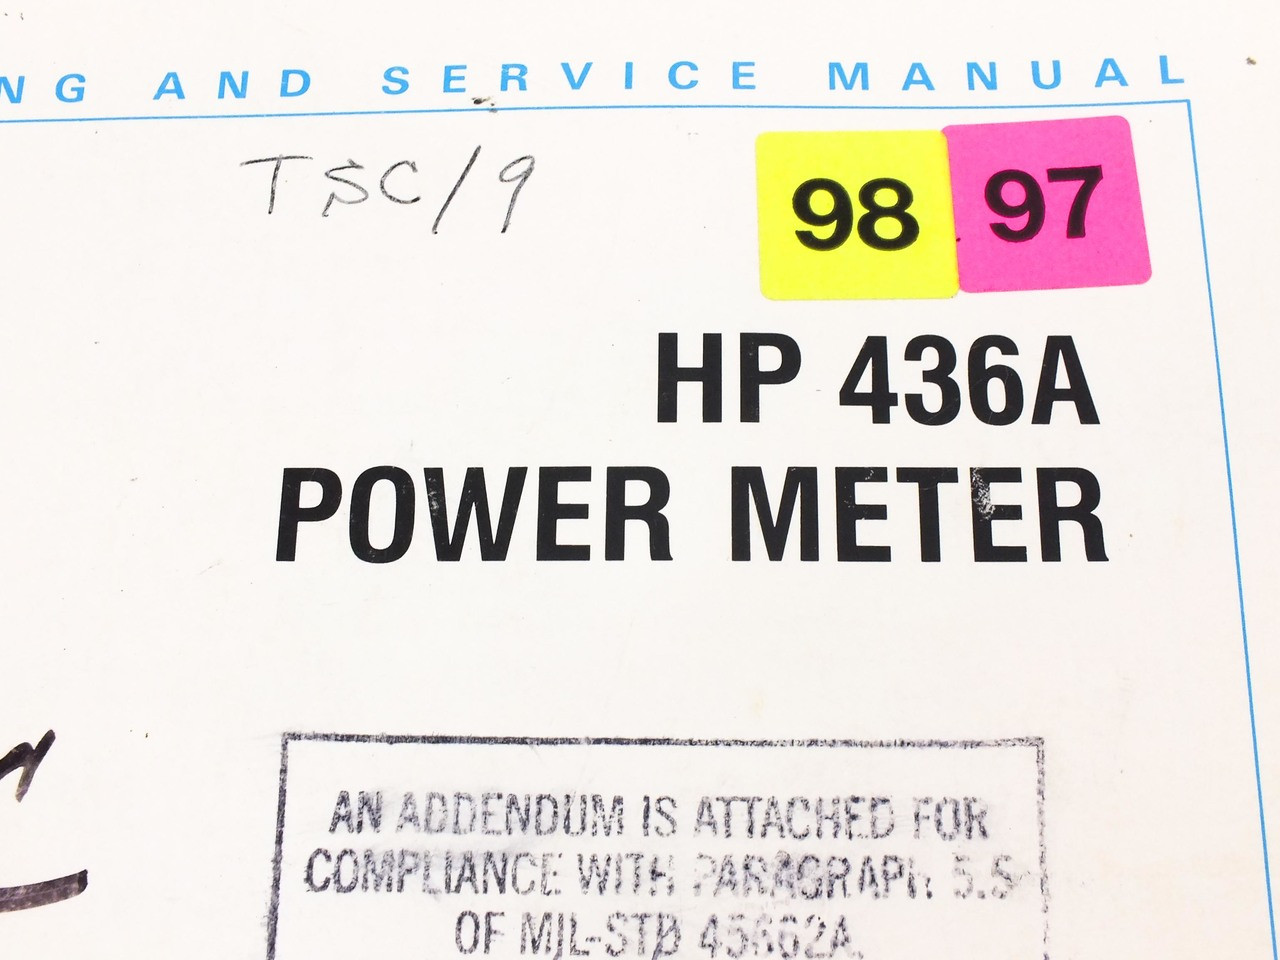 Hp 436a power meter operating and service manual with options 003 hp 436a power meter operating and service manual with options 003004022 freerunsca Choice Image